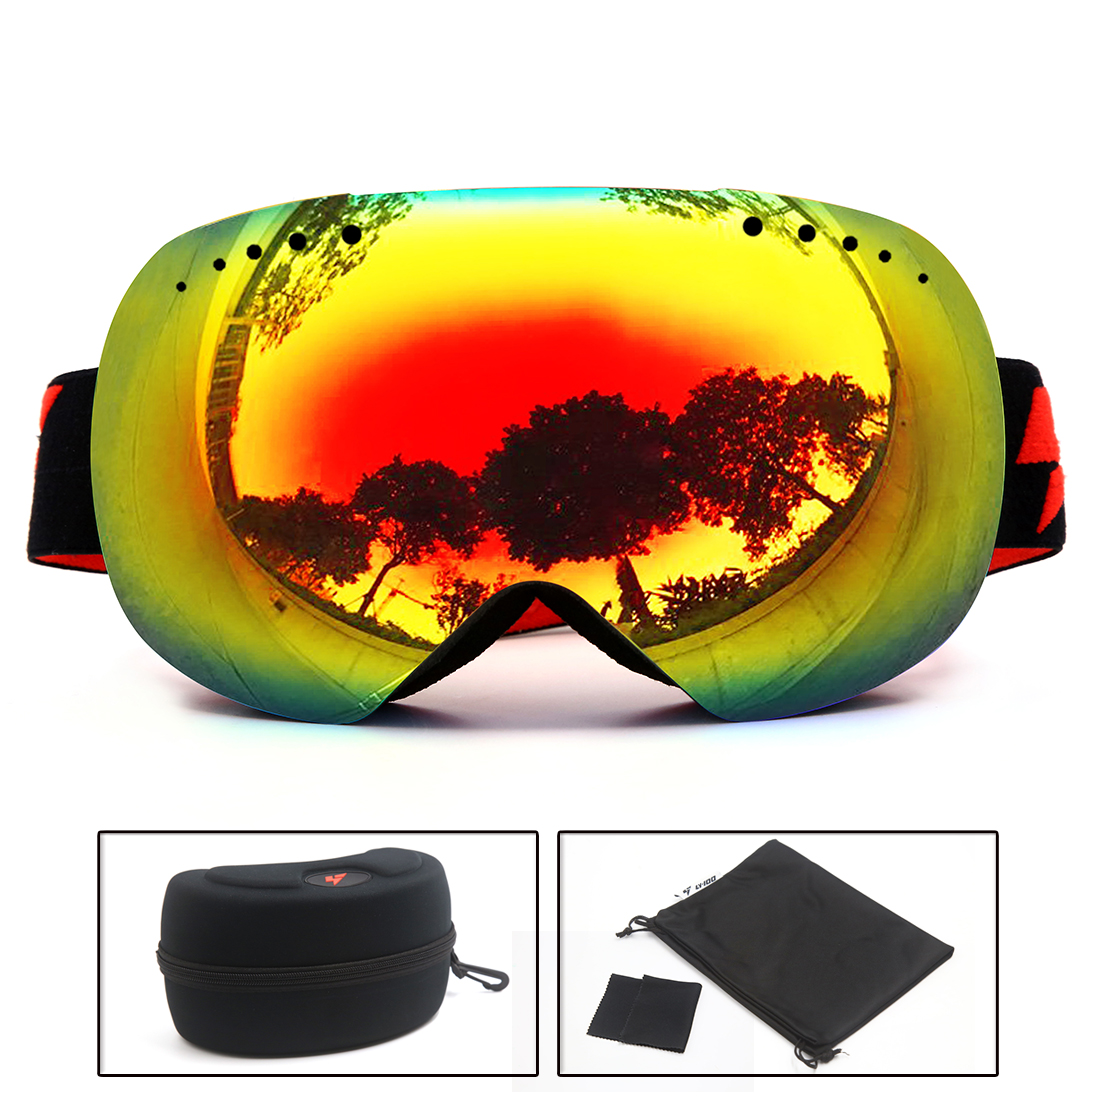 LY-100 Ski Snowboard Goggles Snowmobile Anti-fog UV400 Protect OTG Non Slip BK by